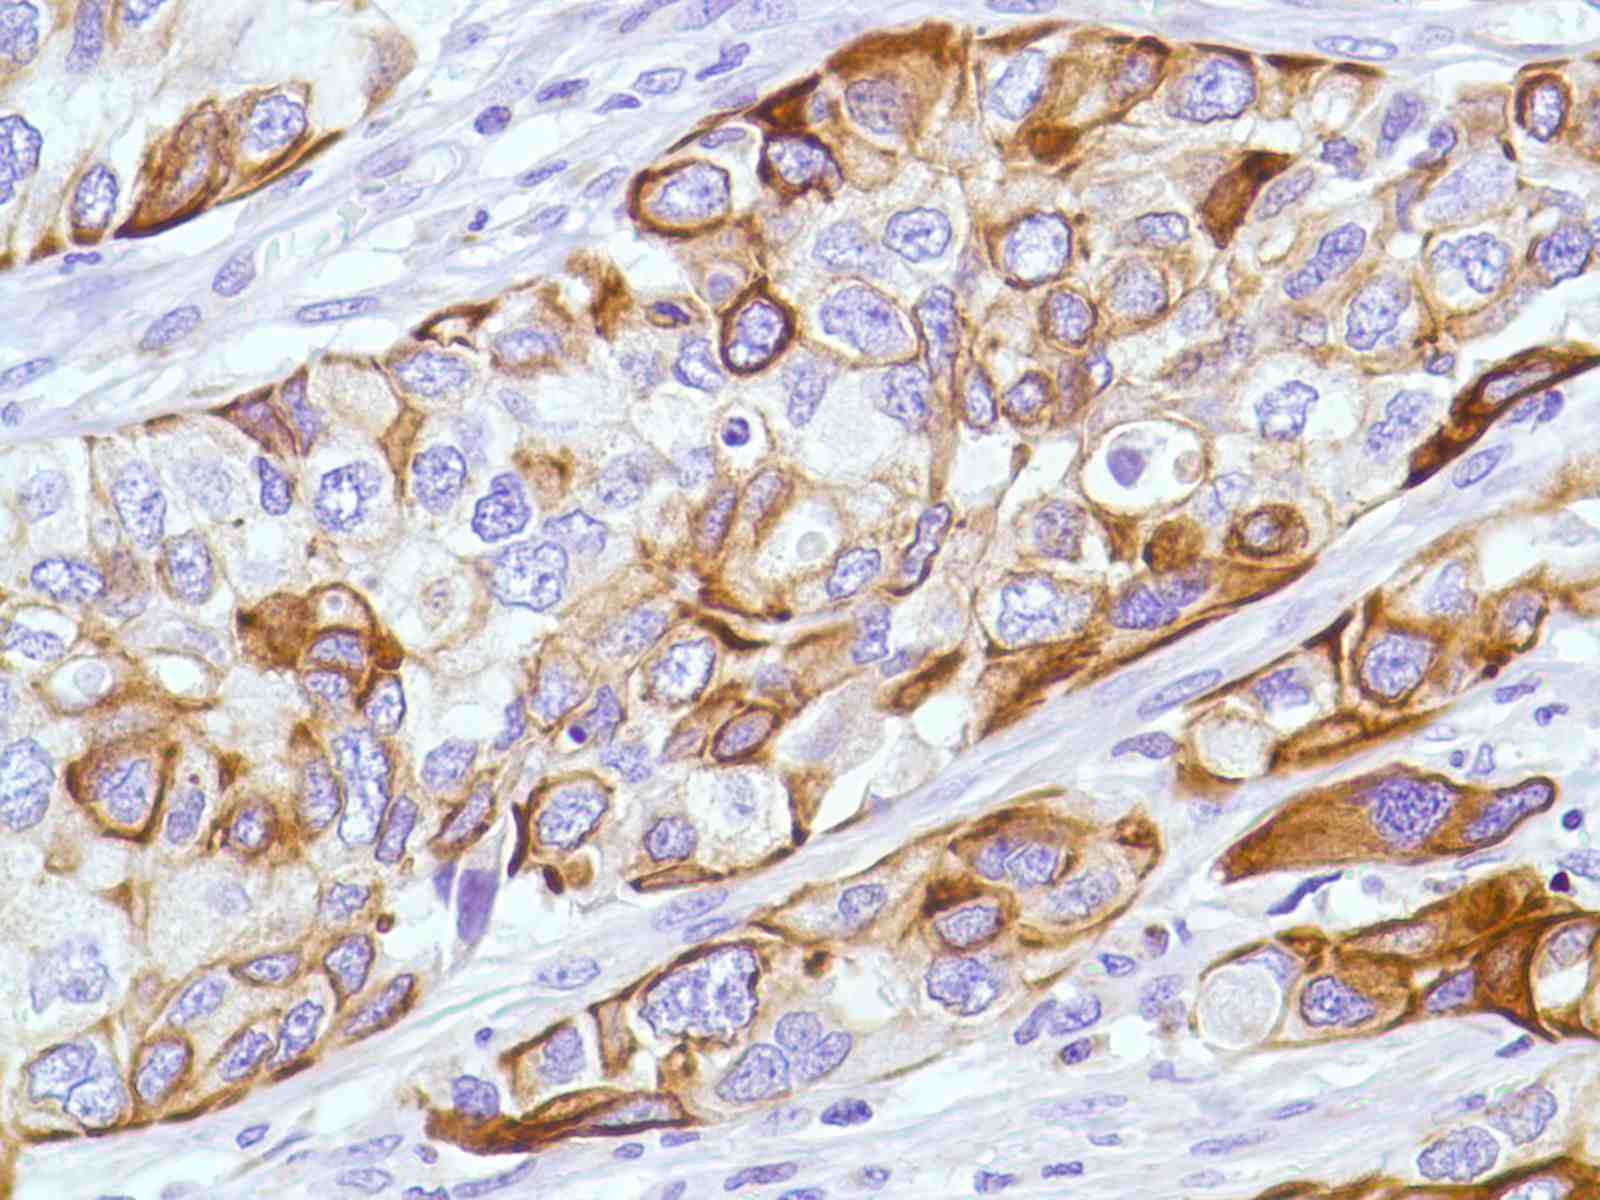 Human Bladder Transitional Cell Carcinoma stained with anti-Keratin 6 antibody